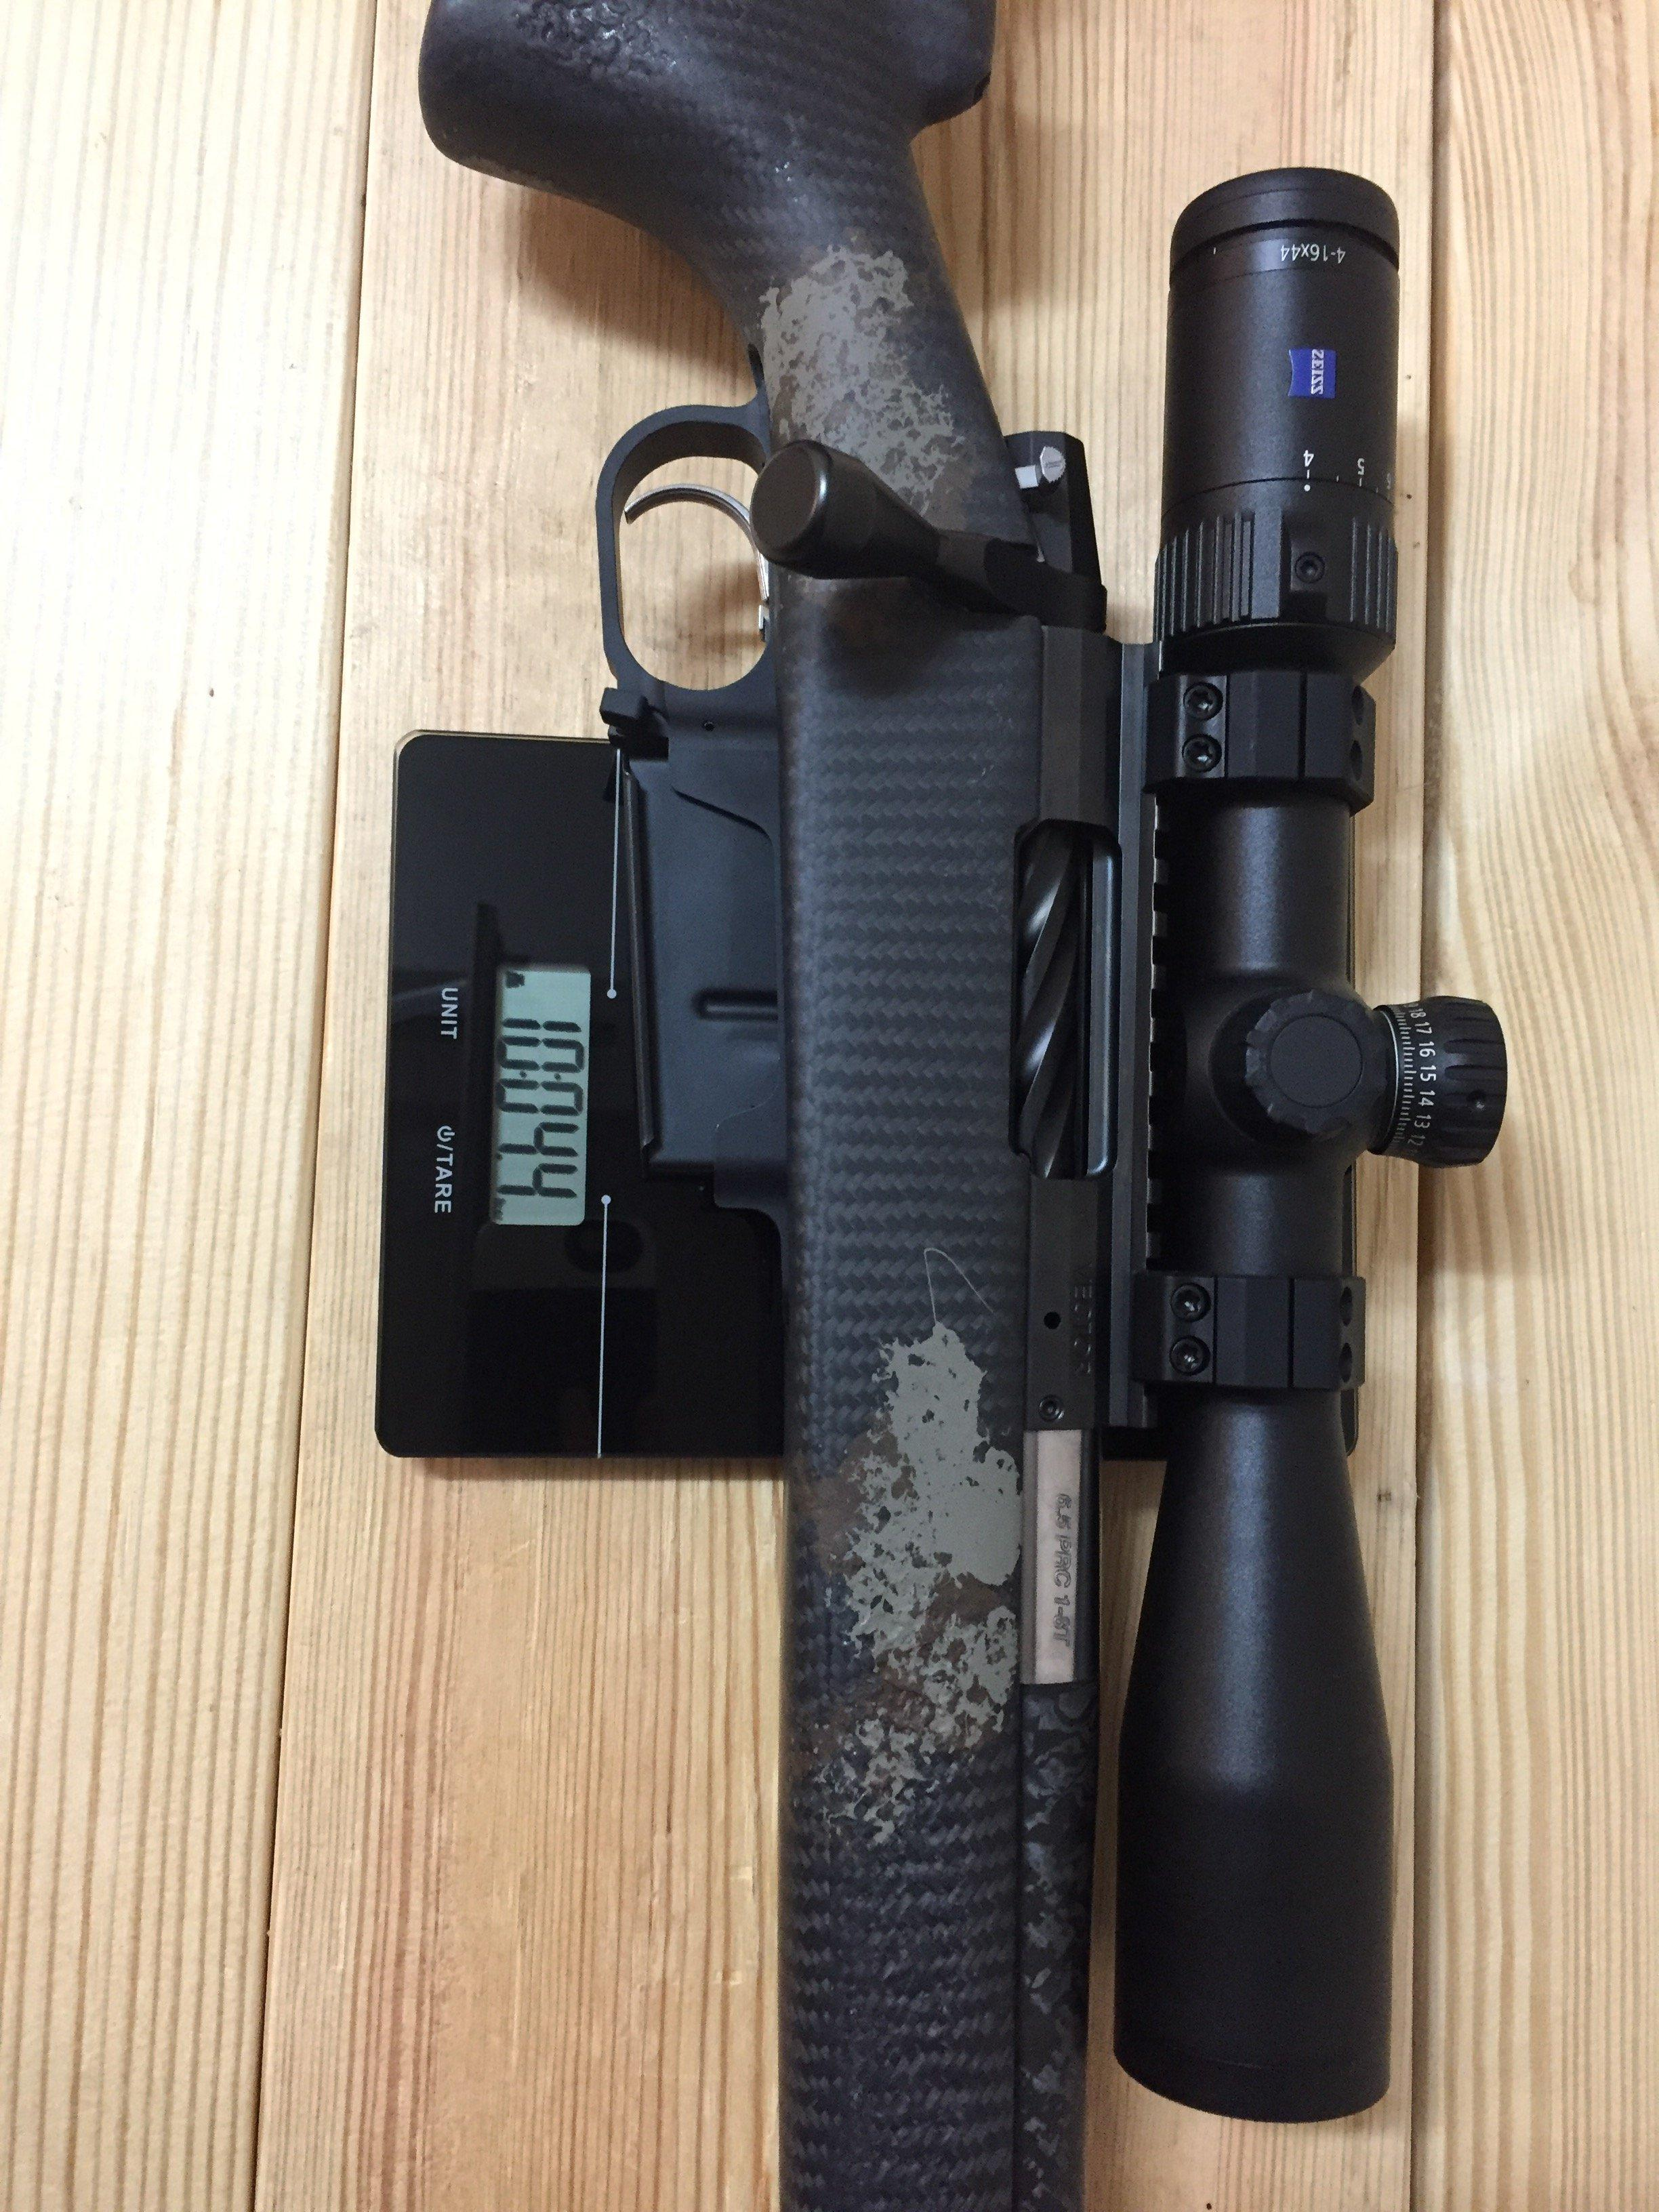 6 5 builds    let's see them | Long Range Hunting Forum